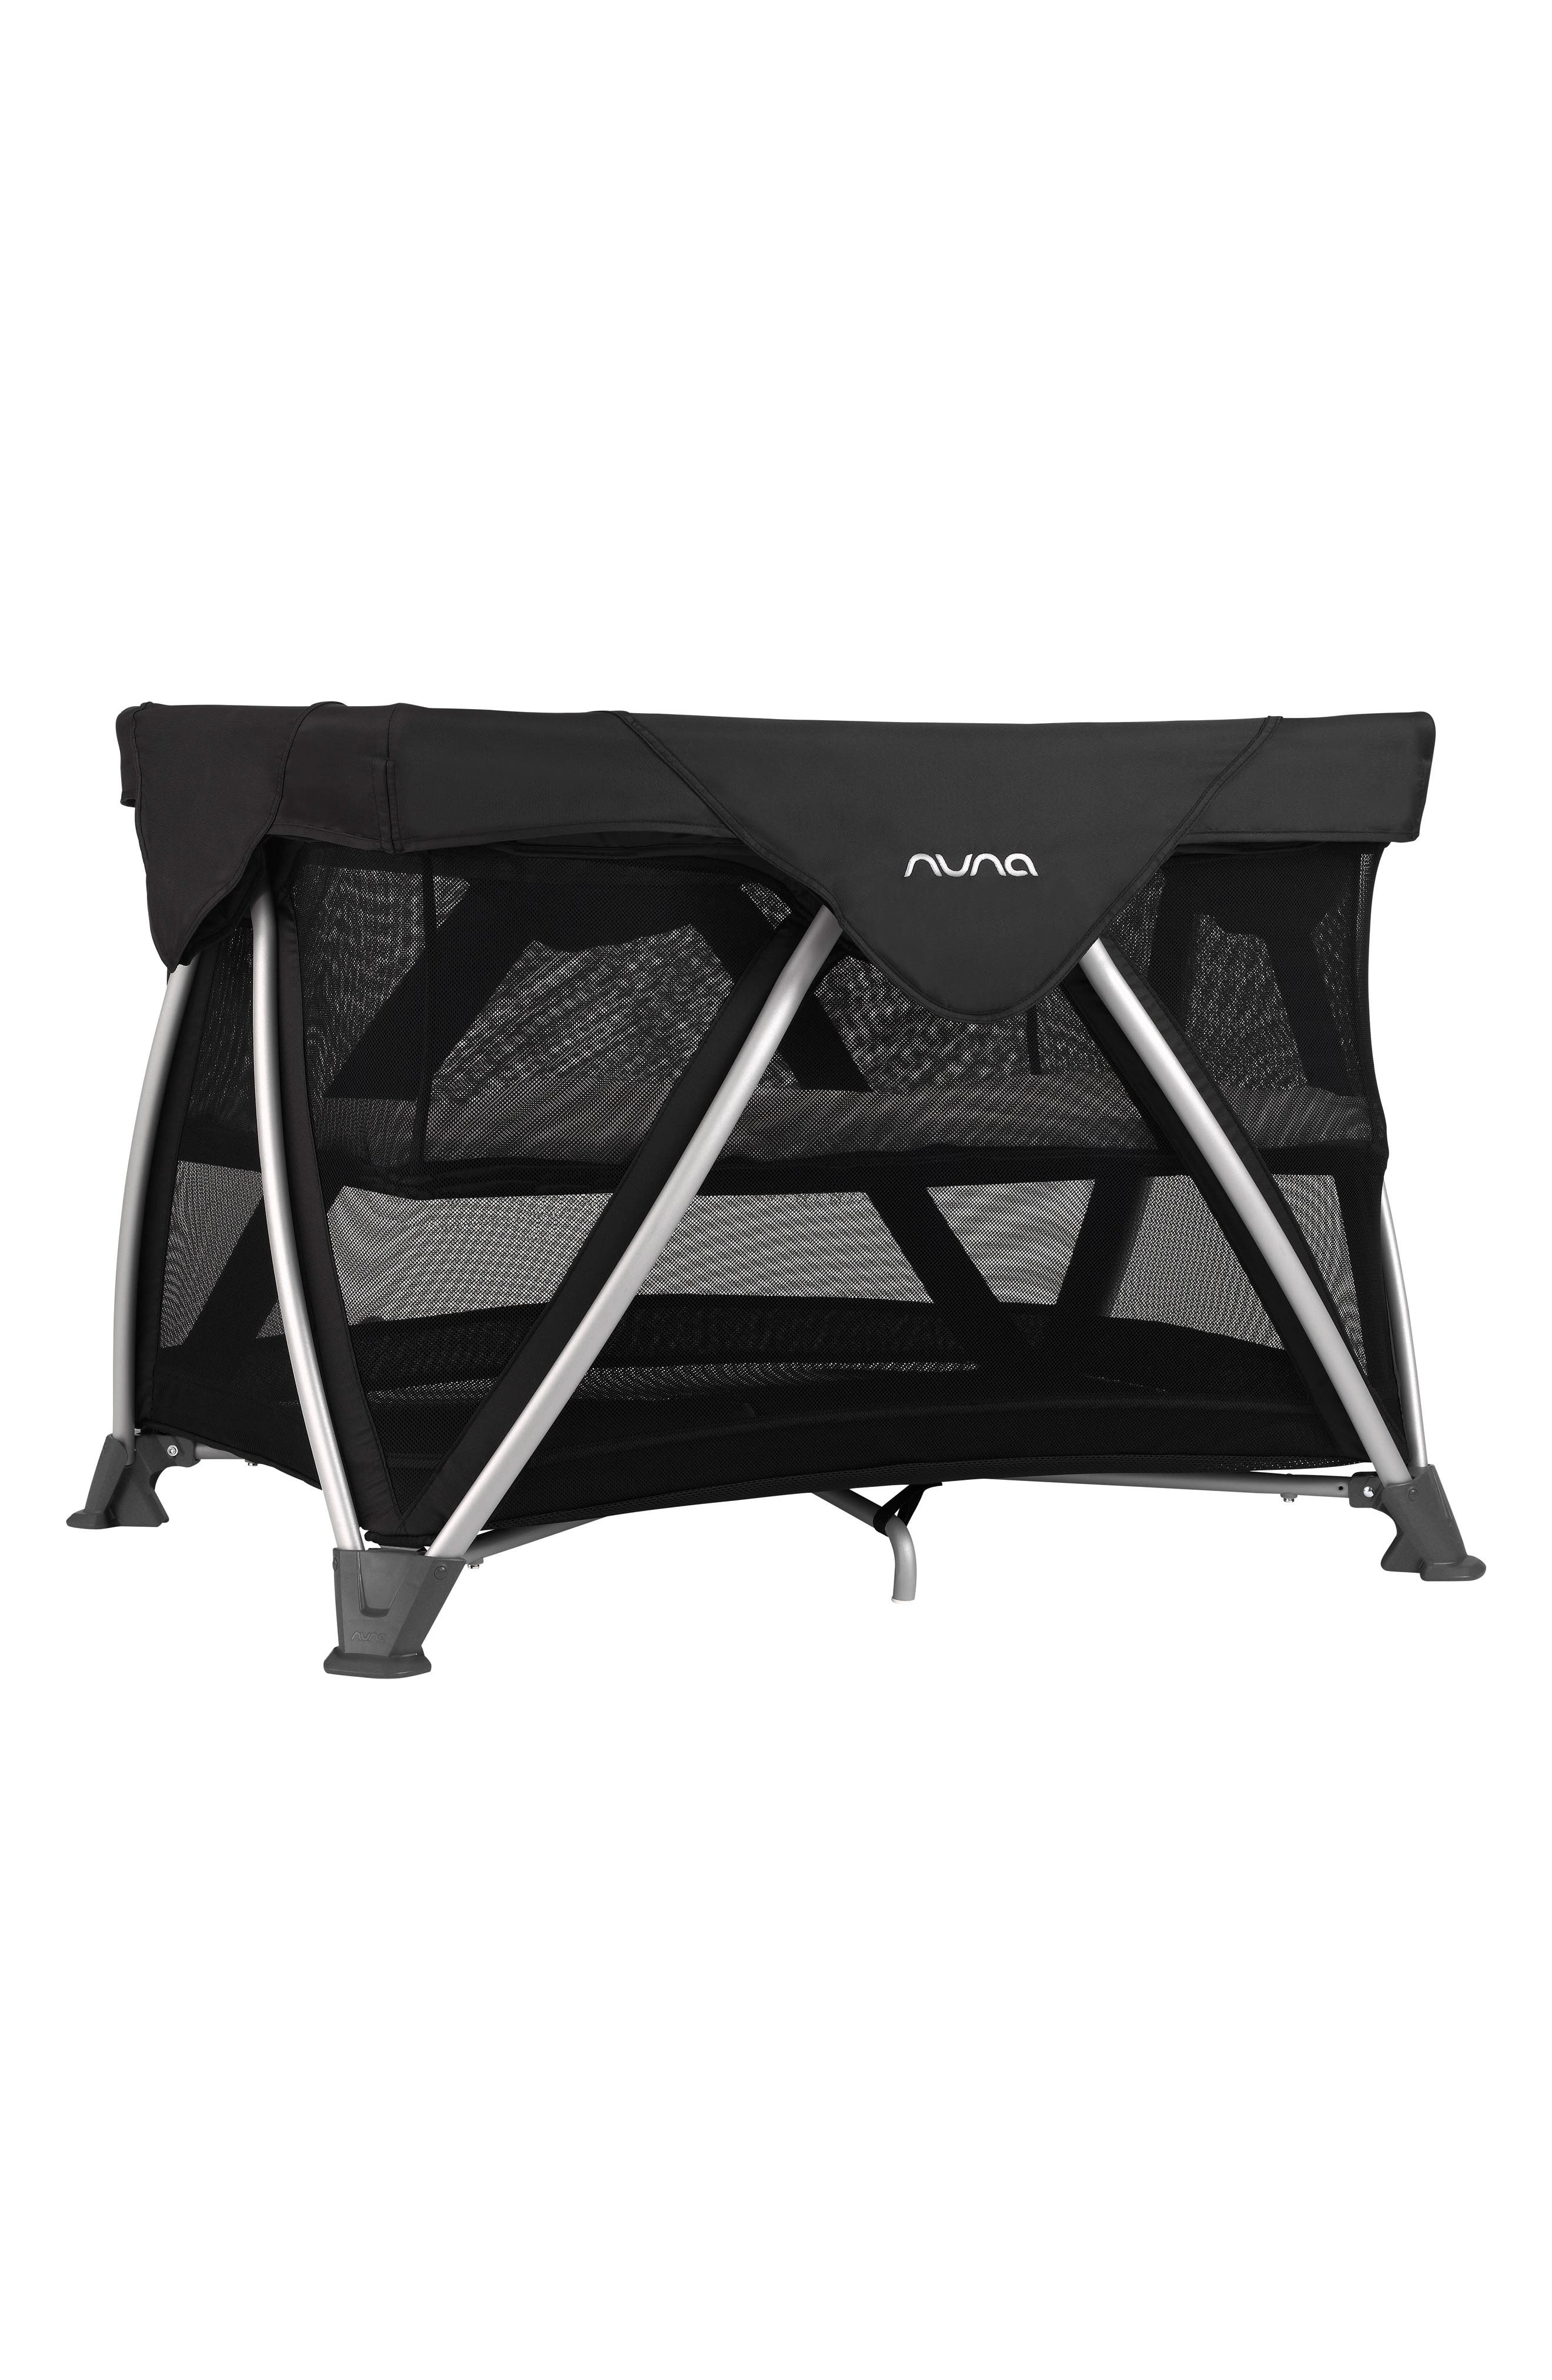 SENA<sup>™</sup> Mini Aire Travel Crib,                             Alternate thumbnail 3, color,                             NIGHT